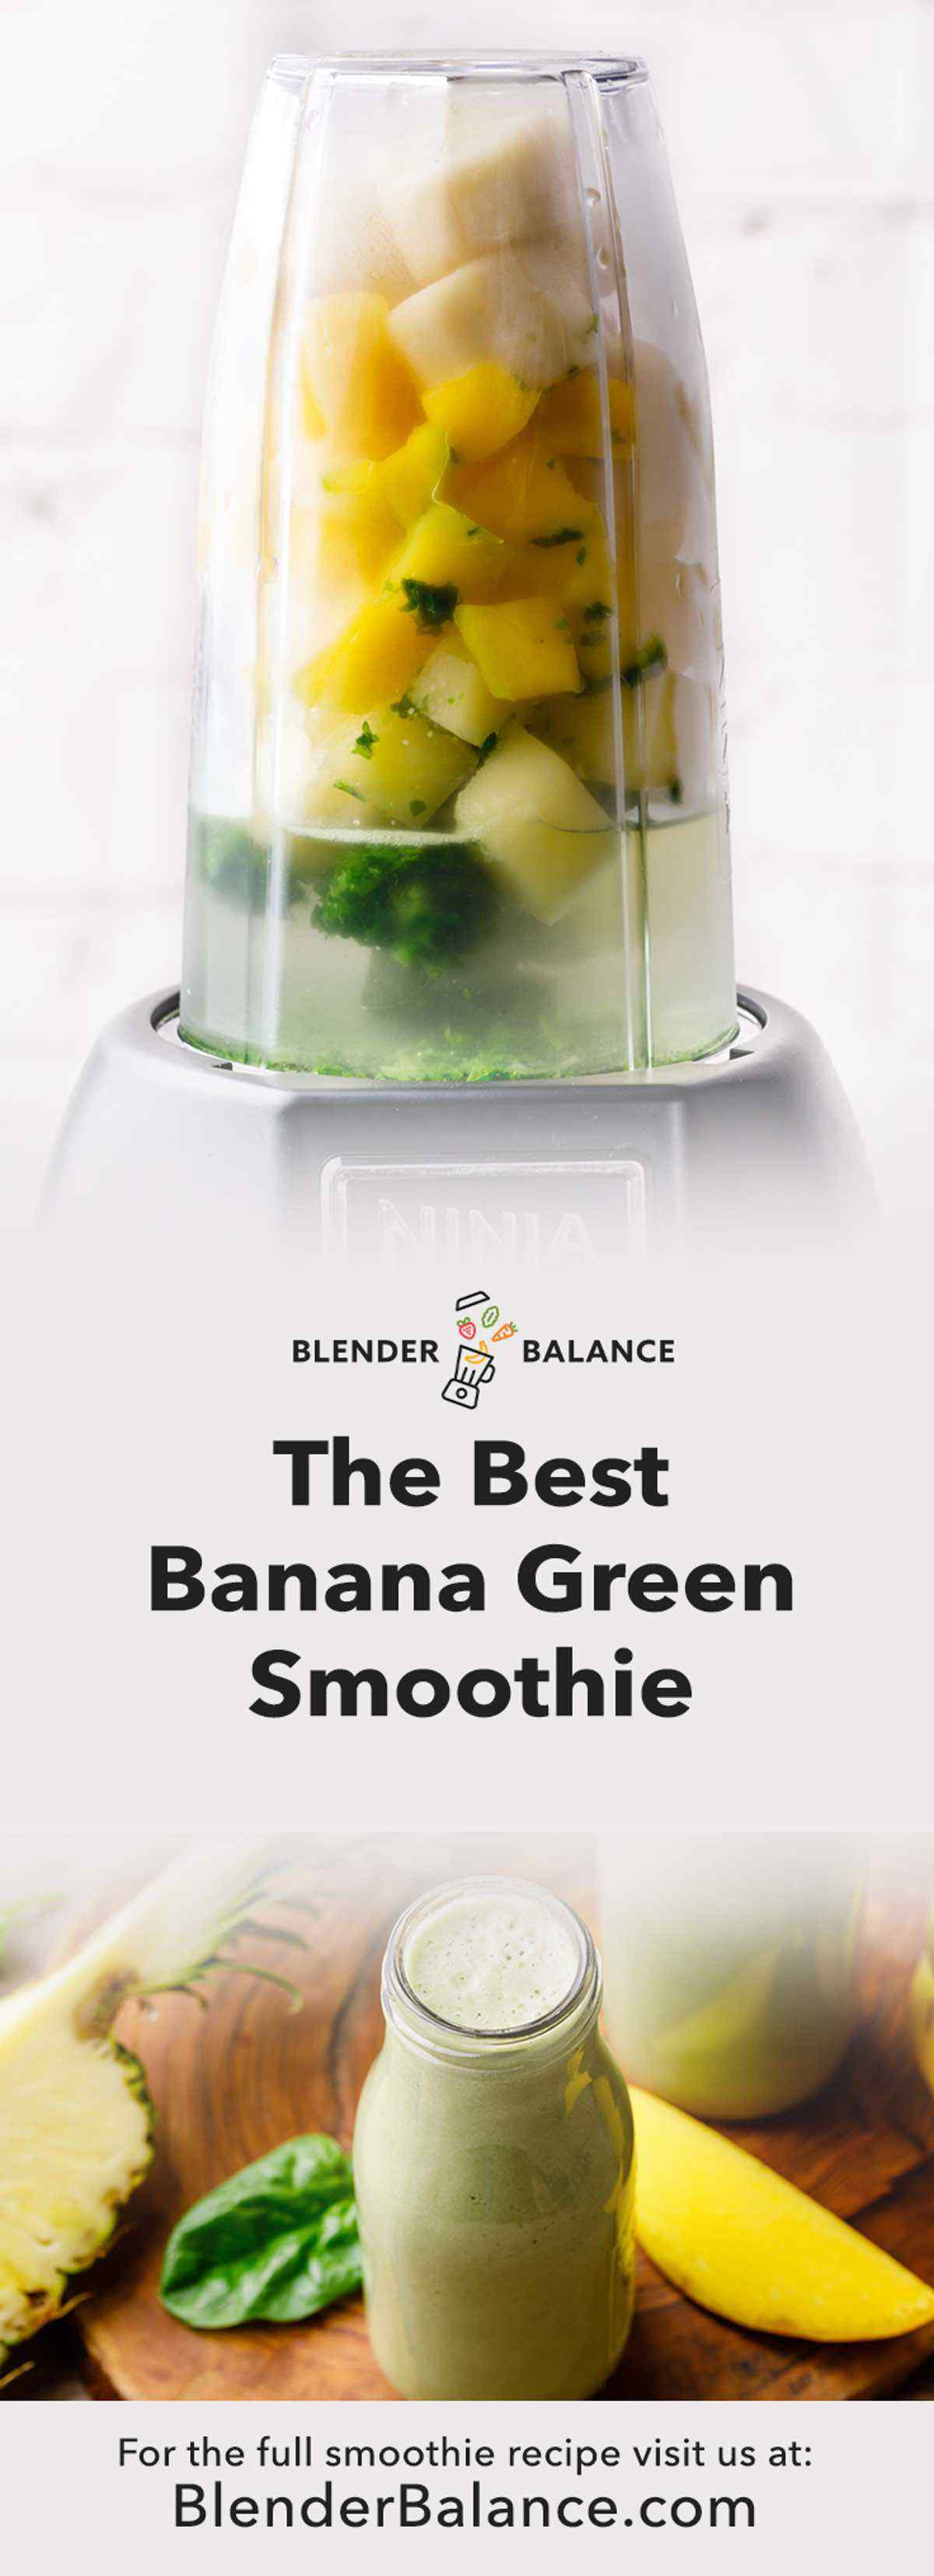 Banana Green Smoothie